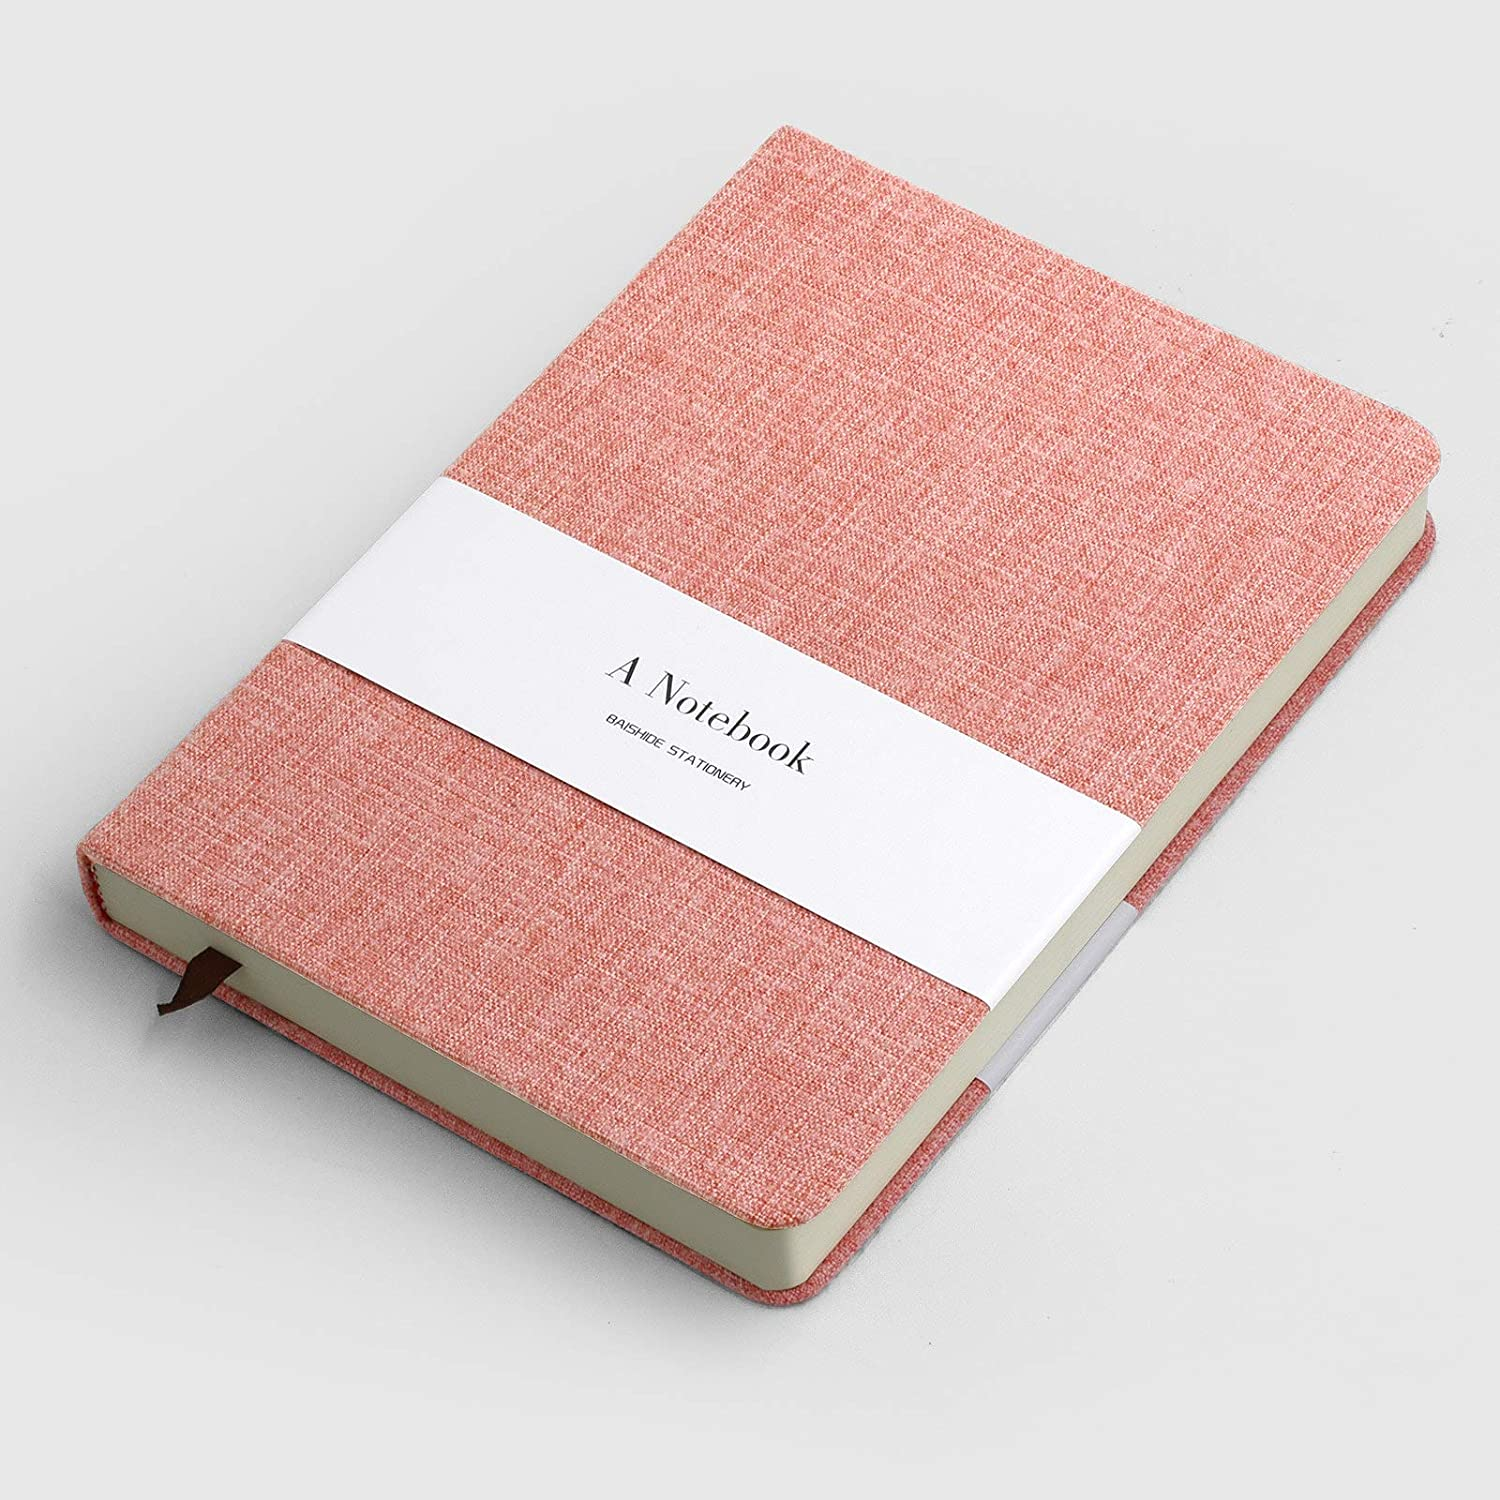 Hard Cover with Art Cloth Pink KKDragon Notebook A5 Notepad Ruled Paper /& Blank Paper Total 132 Sheets 264 Pages